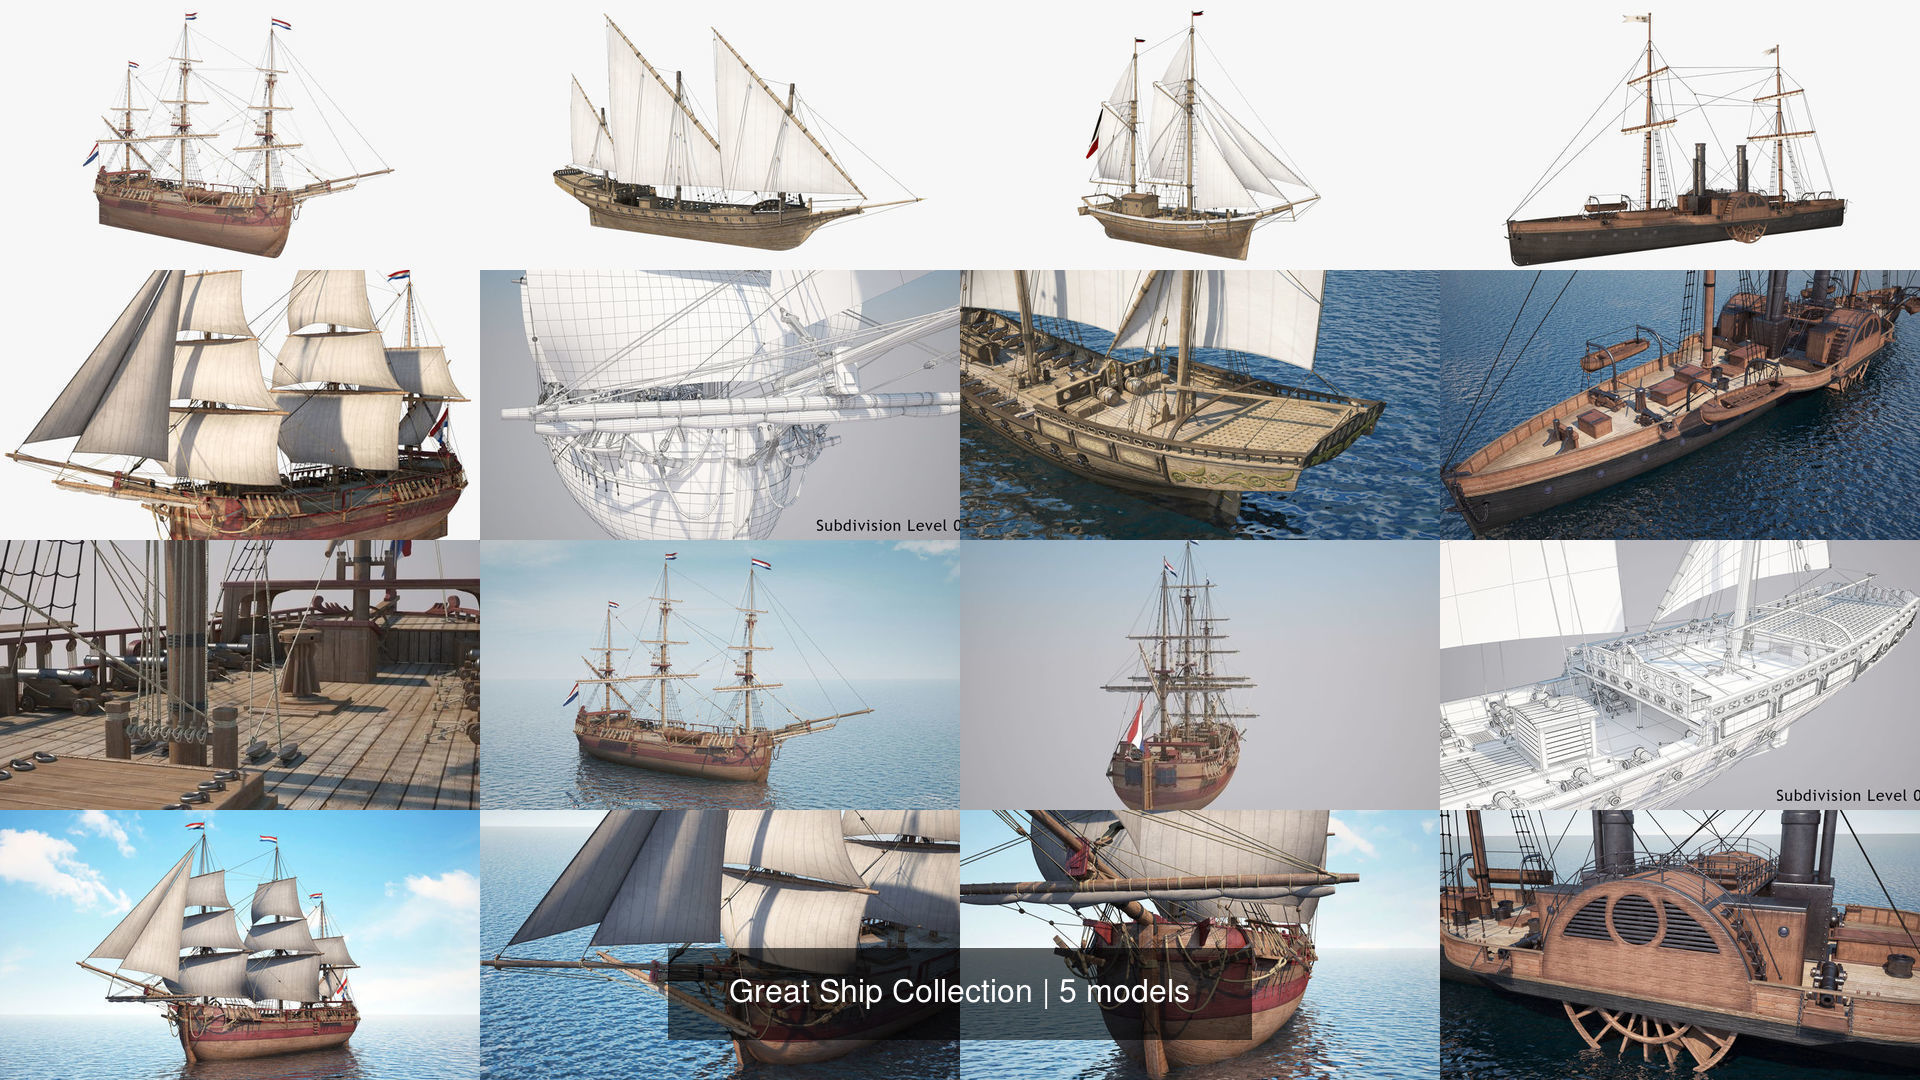 Great Ship Collection